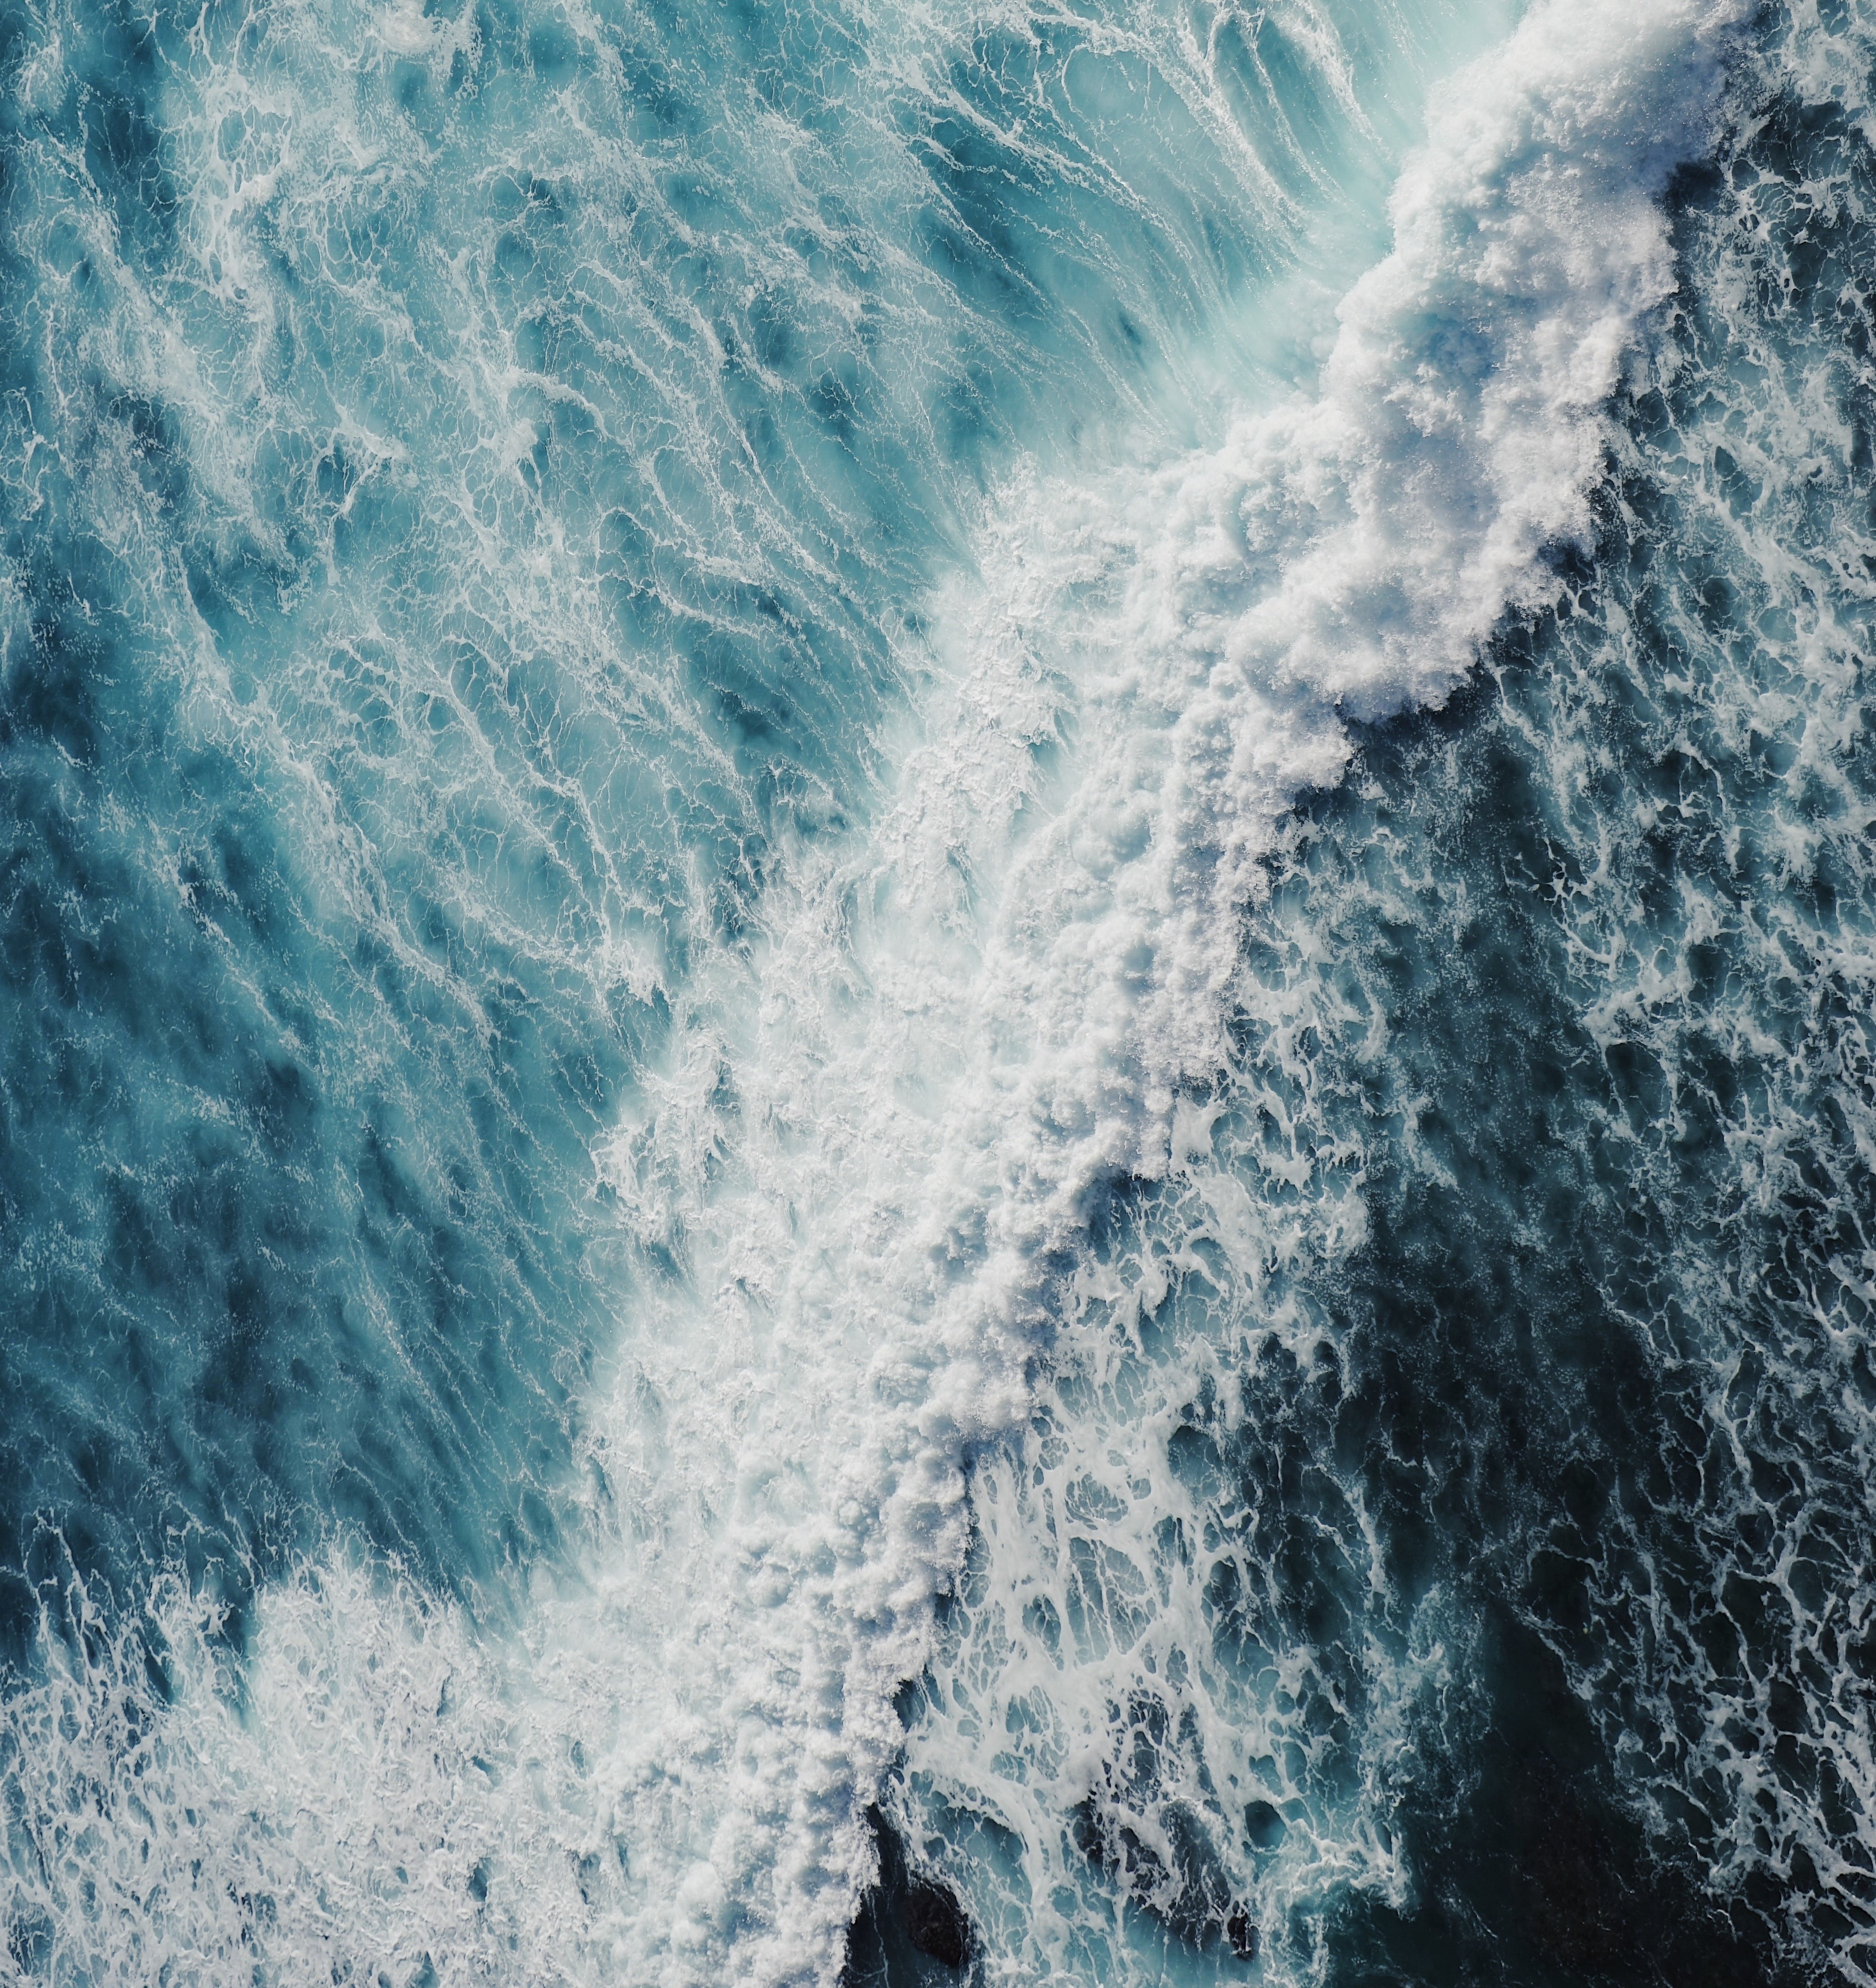 Aerial view of dark blue white-capped waves churning in the ocean